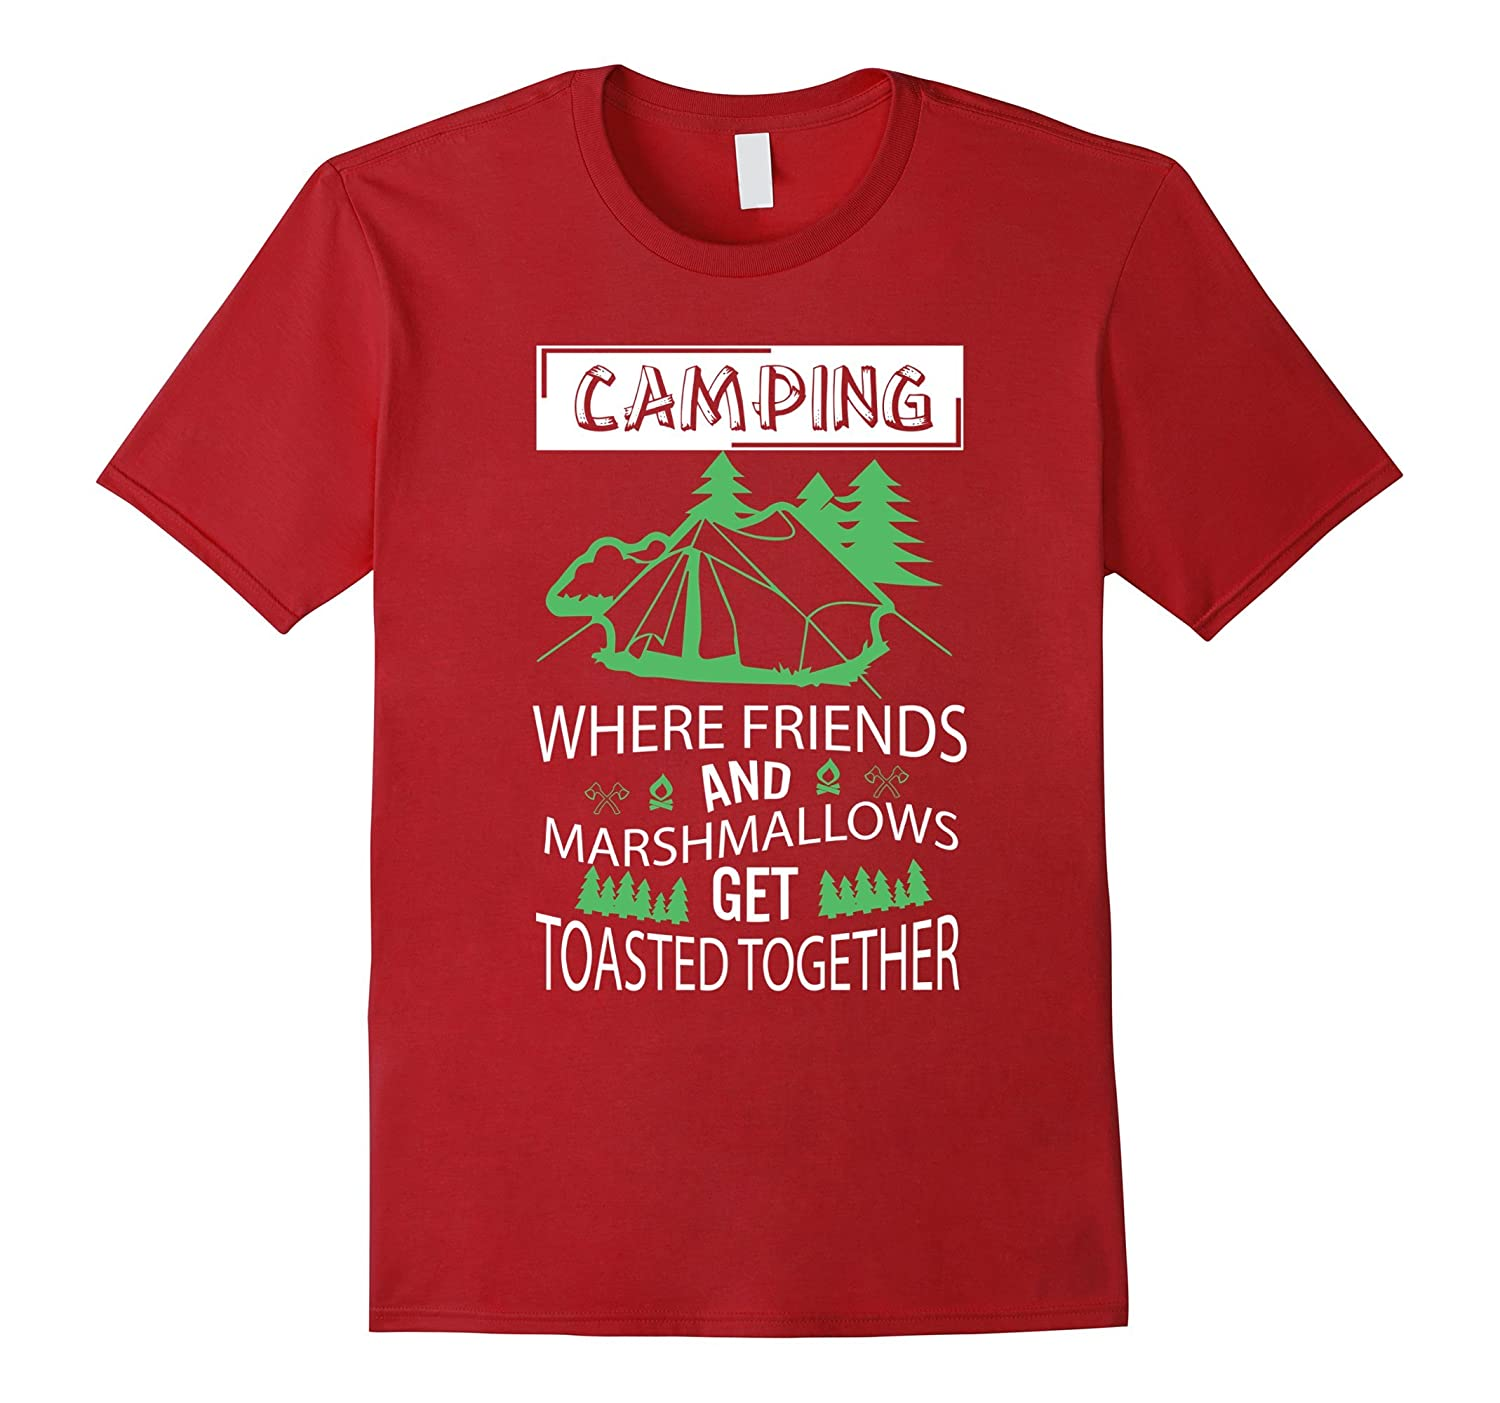 Camping where friends and marshmallows get toasted T-Shirt